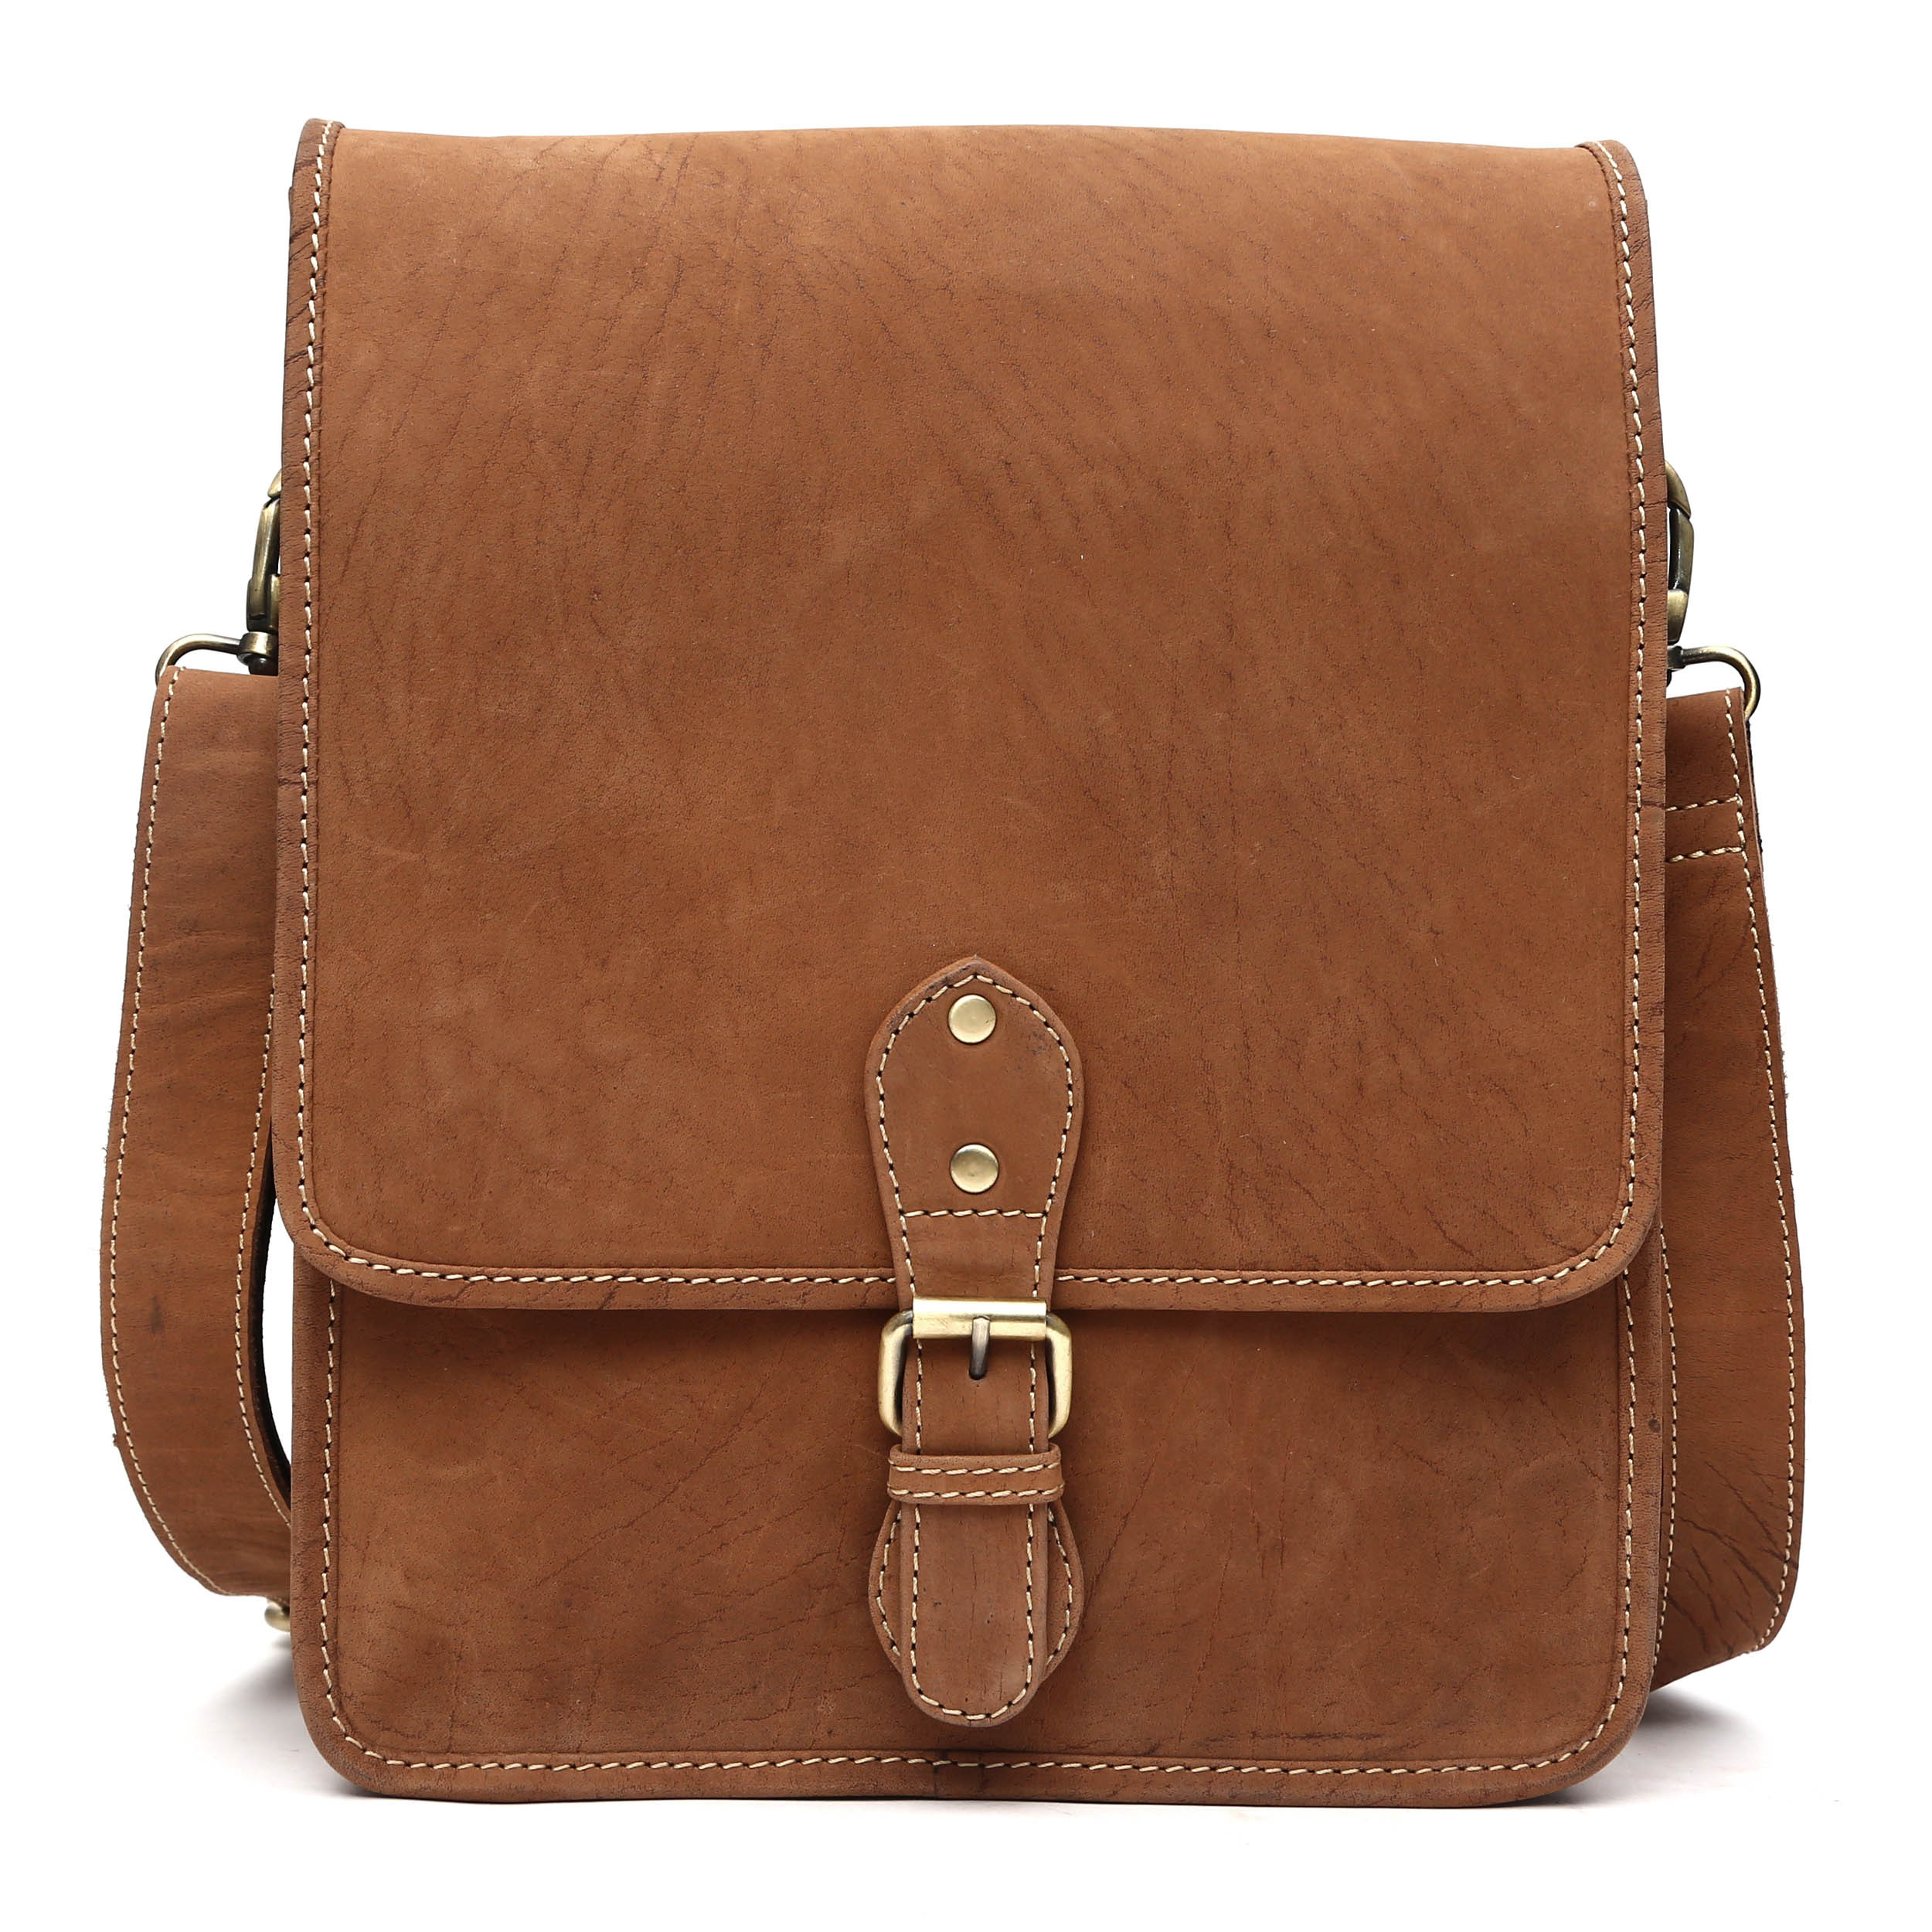 1b8396ef9c98 Leather Messenger Bag at Best Price in India